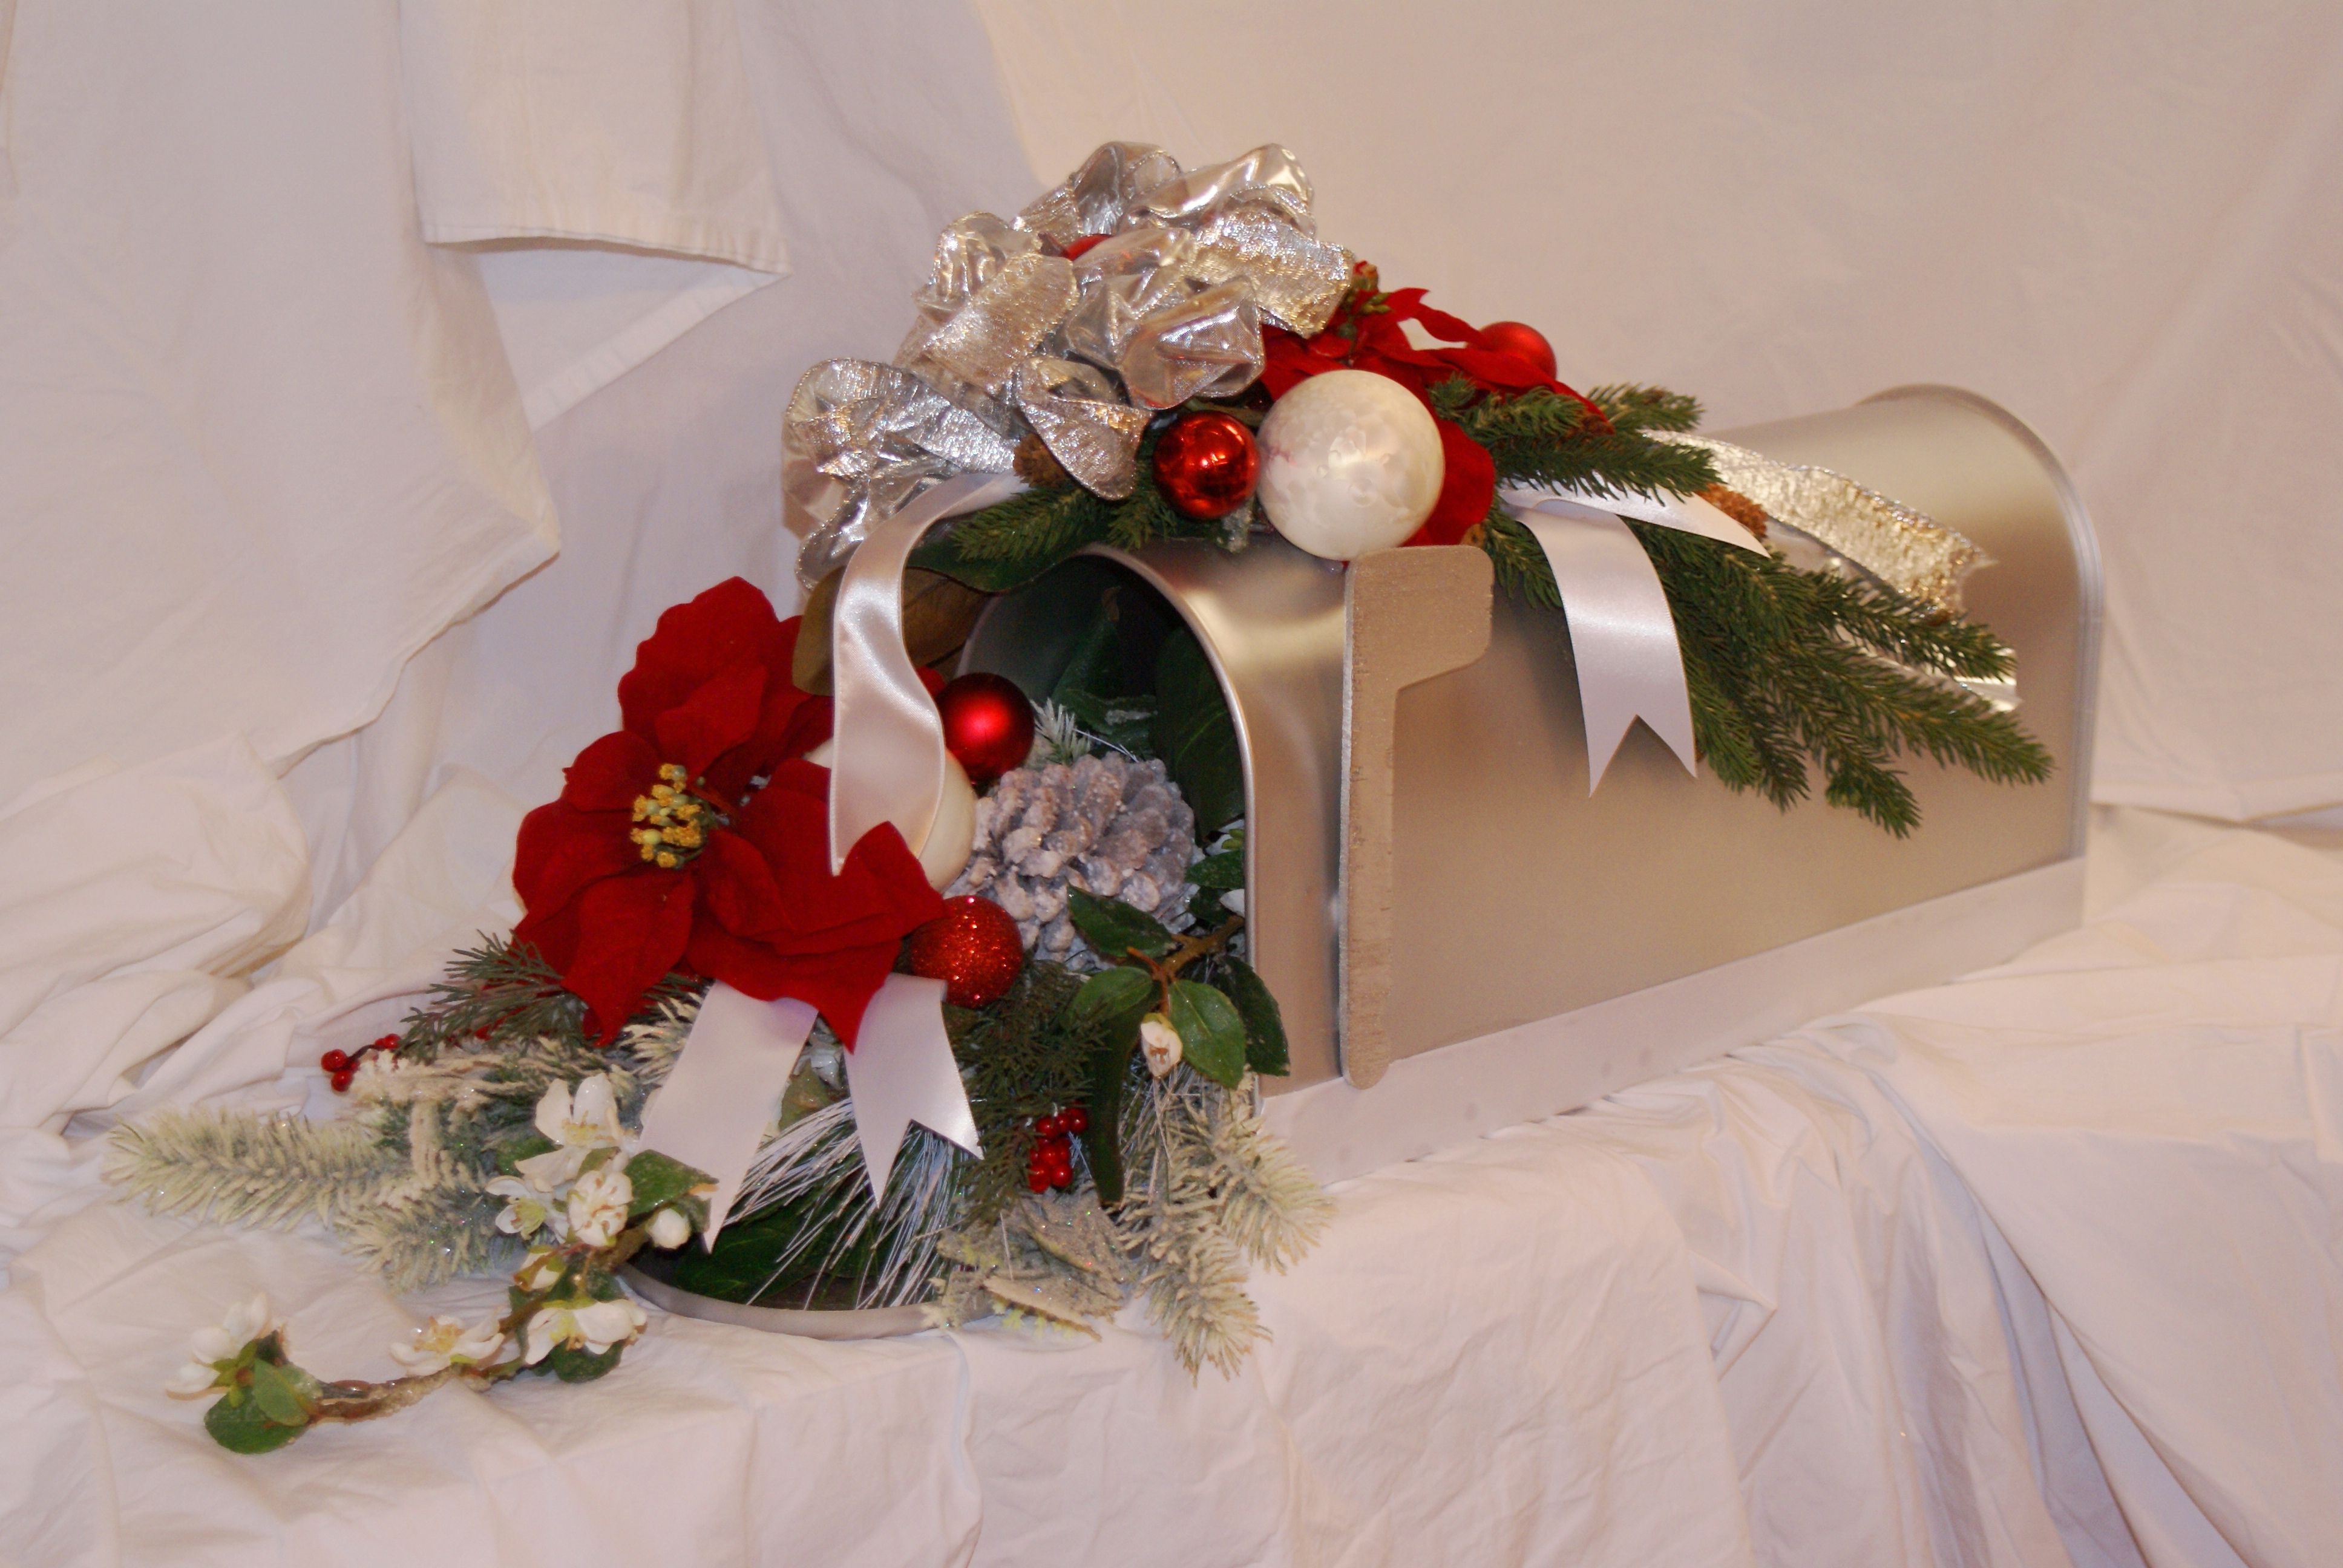 Dress up an old mailbox with a fresh coat of paint, Christmas greens and sparkly ornaments for a tabletop display